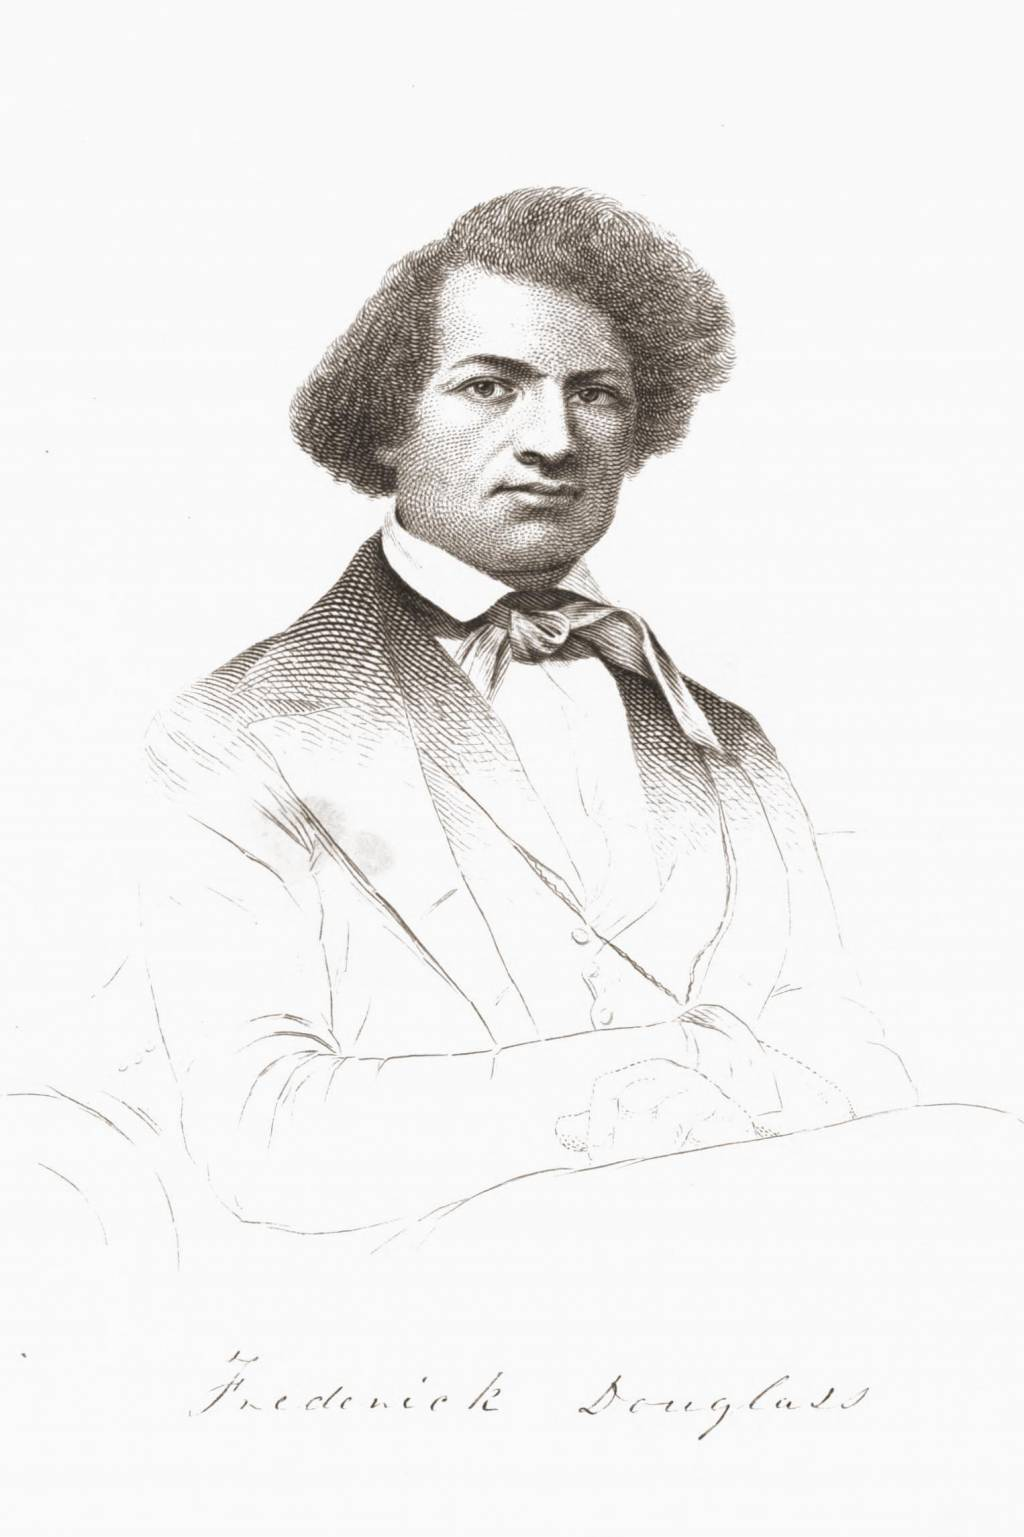 narrative of the life of frederick douglass essay questions narrative of the life of frederick douglass an american slave narrative of the life of frederick